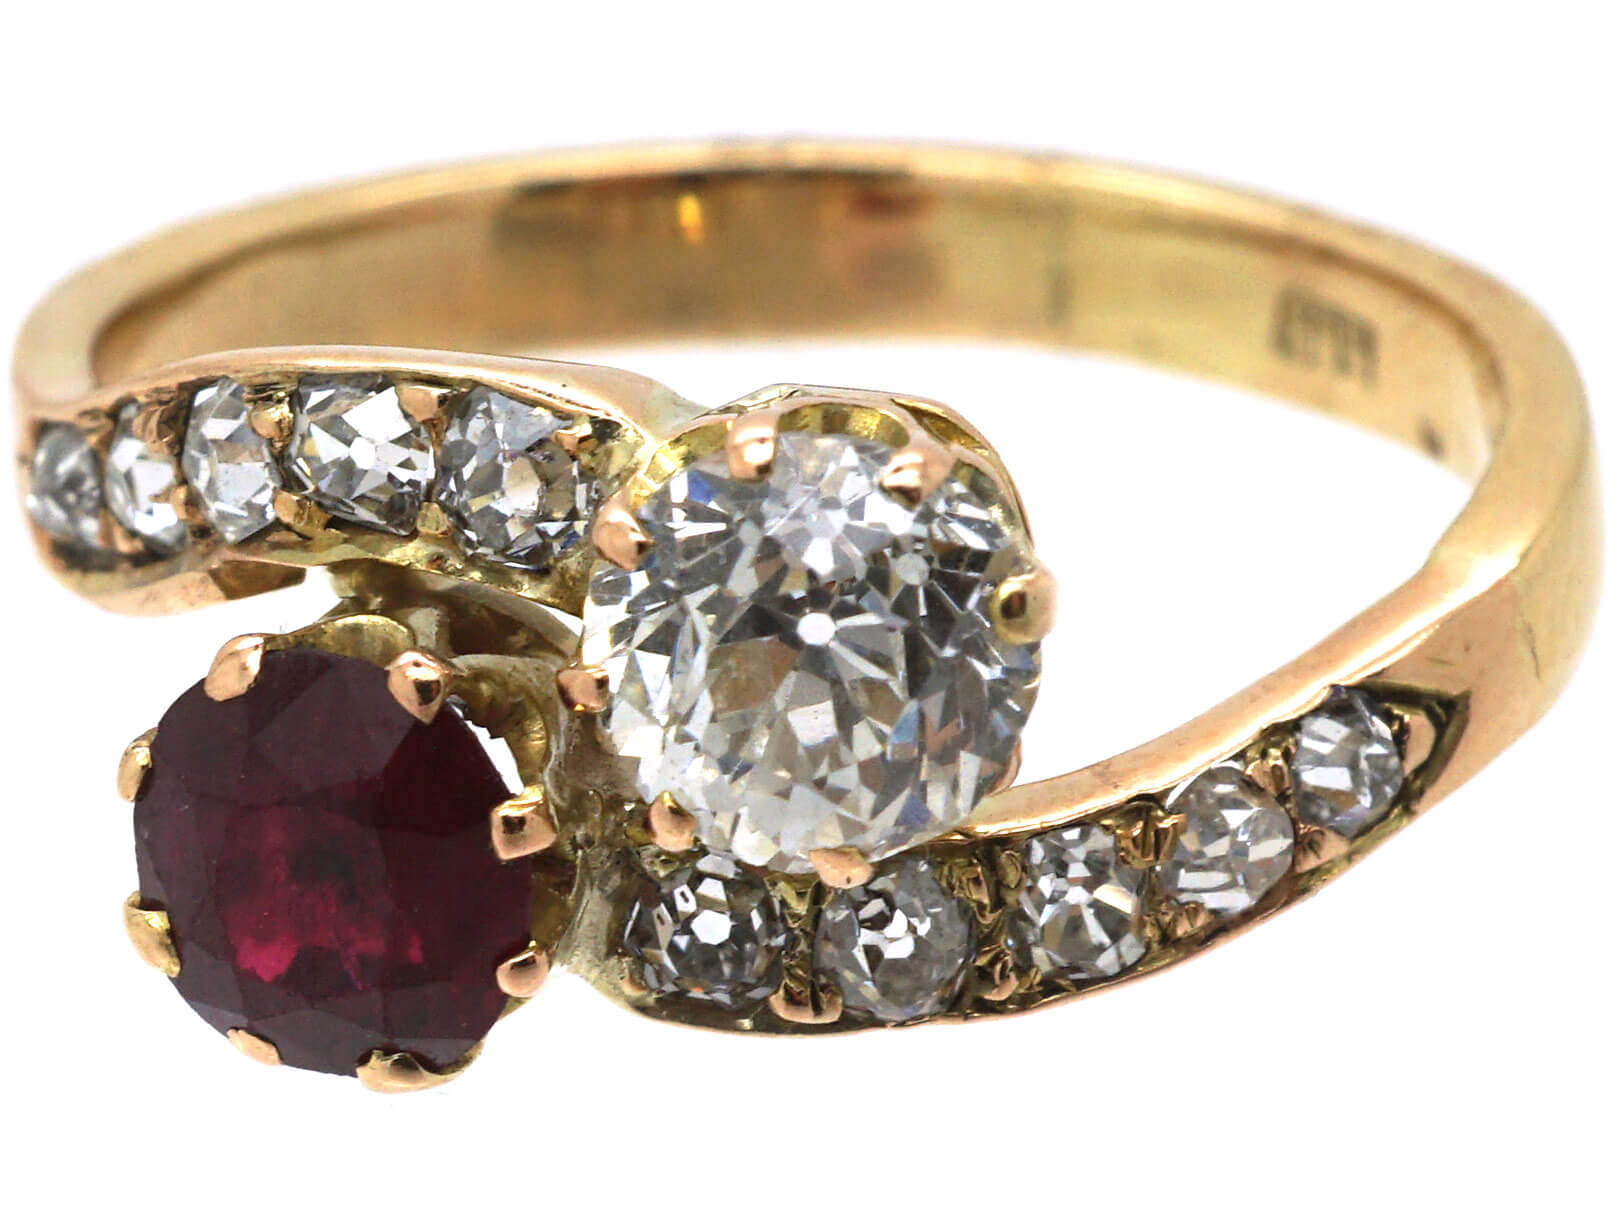 Edwardian 14ct Gold, Diamond & Ruby Crossover Ring